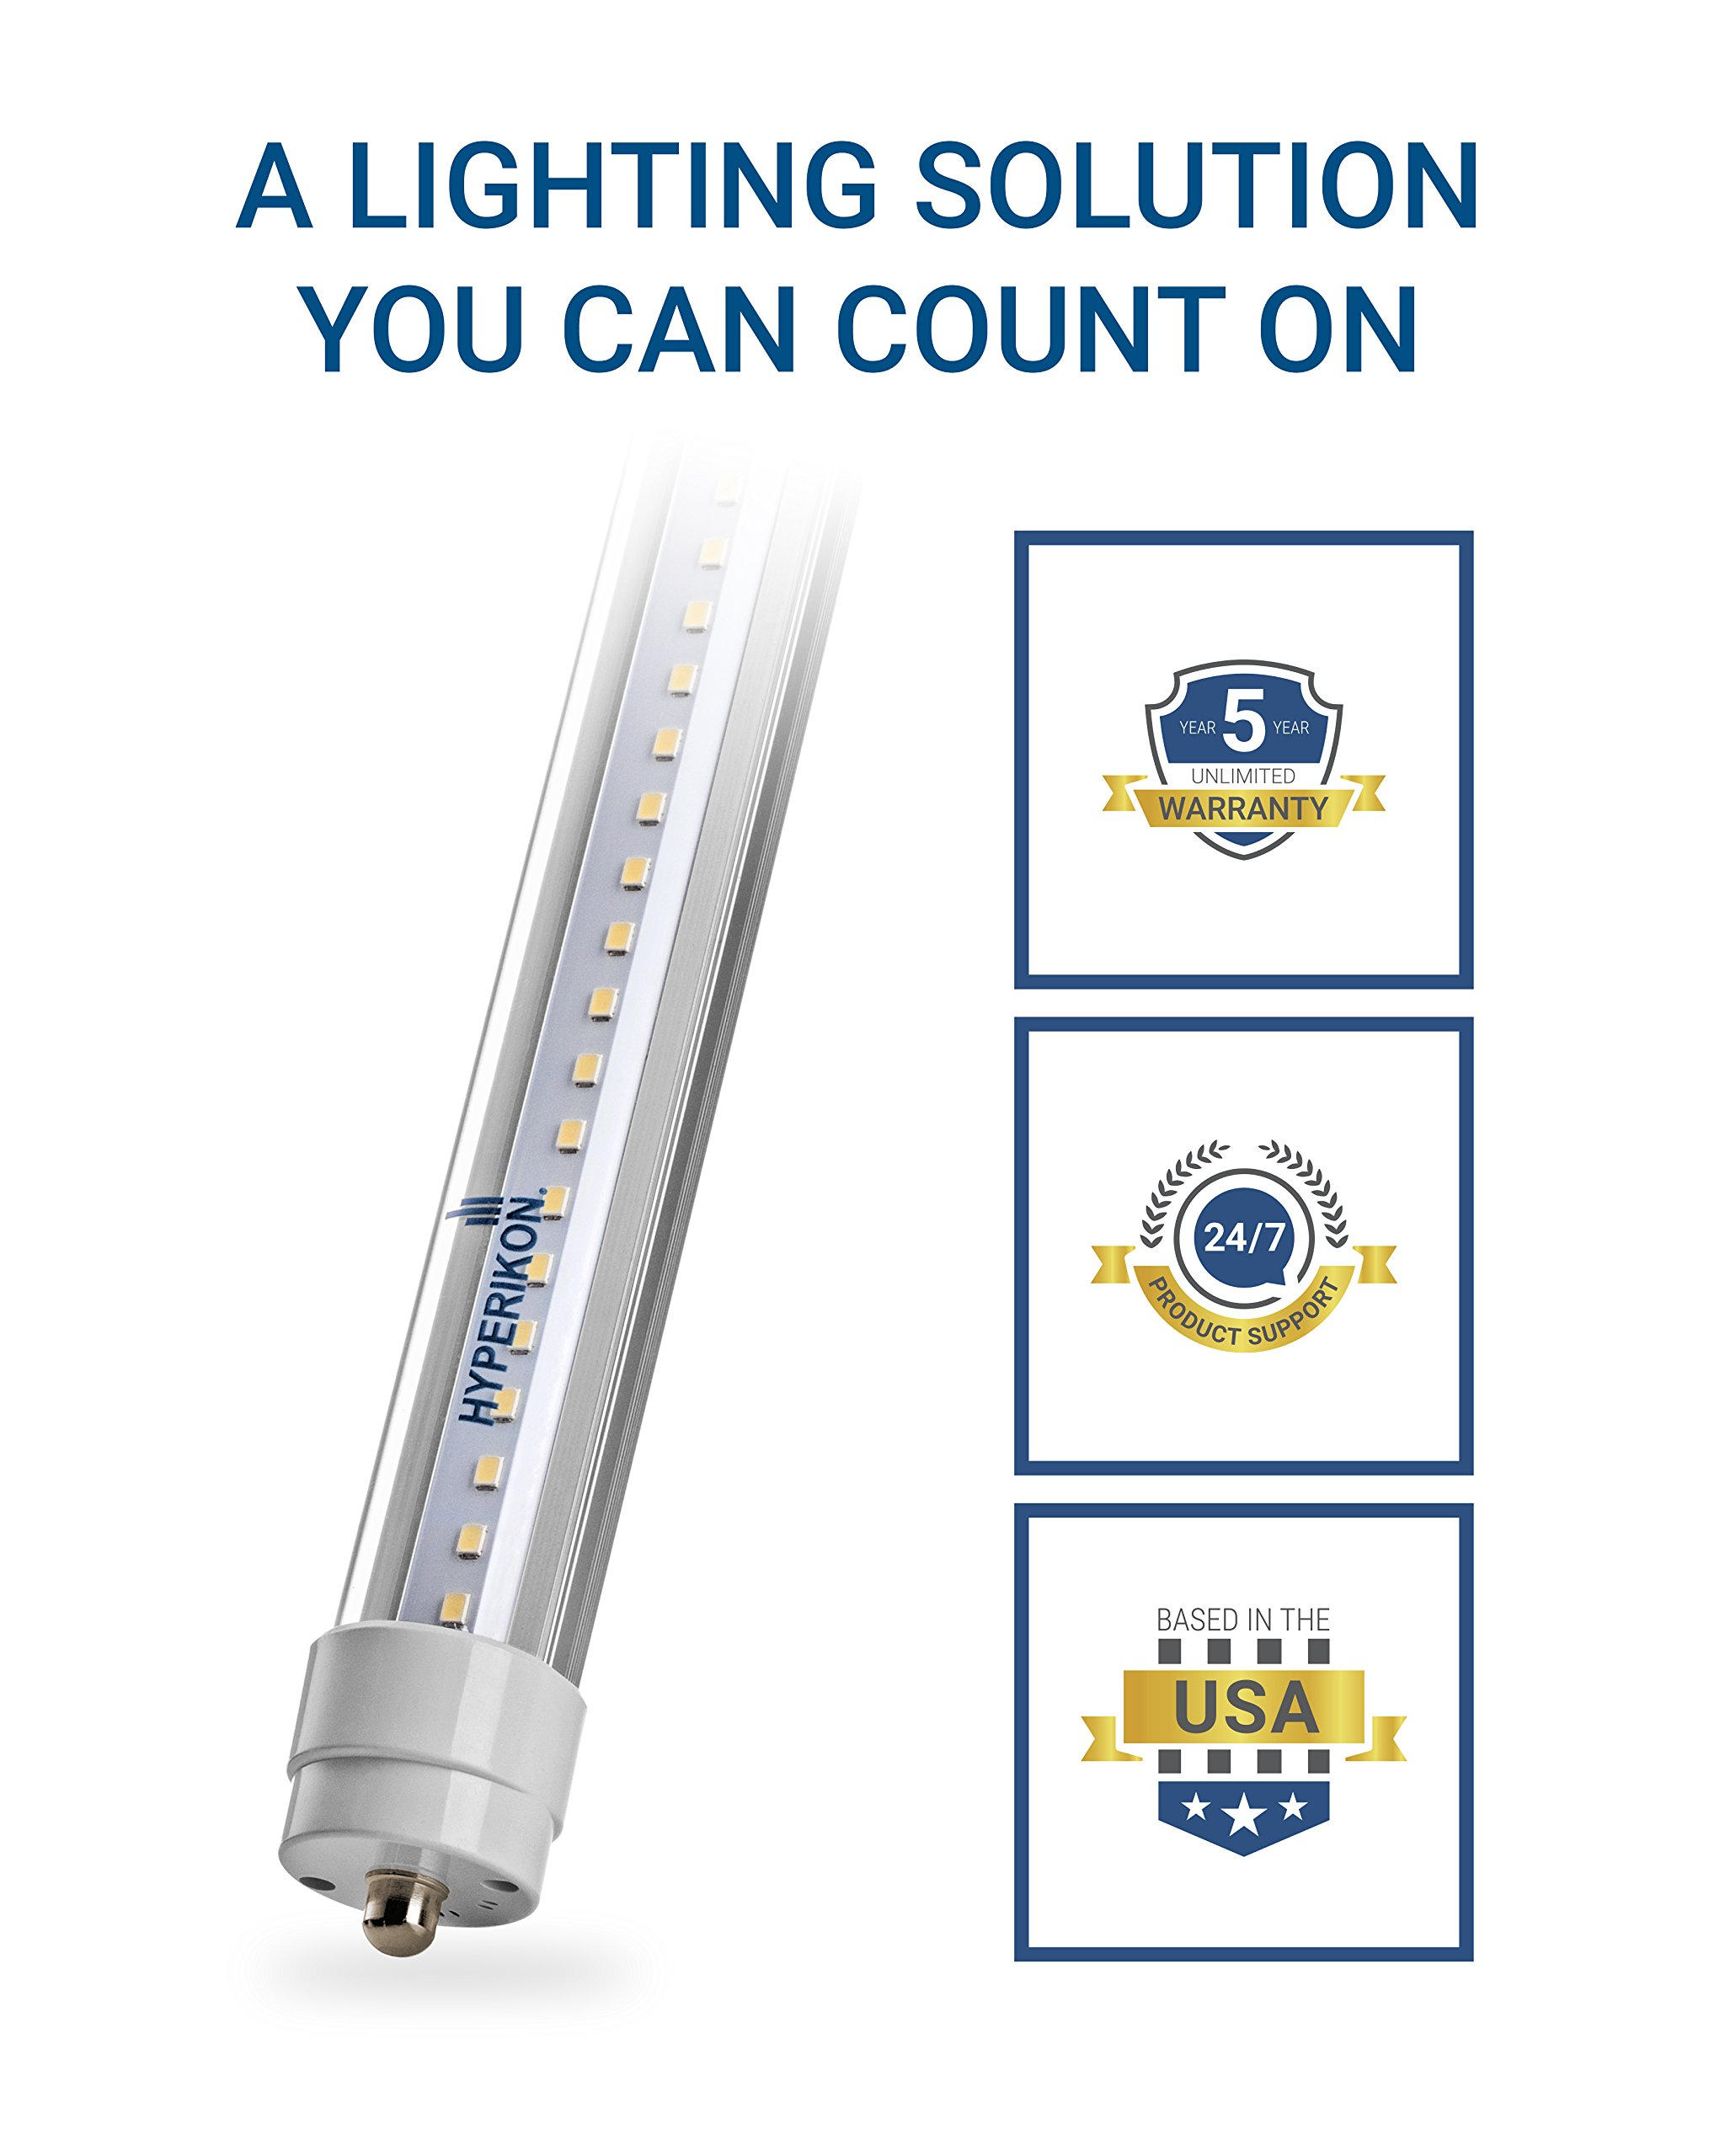 Hyperikon T8 T10 T12 8ft LED Tube Light, 36W (75W Equiv.), Dual-End Powered, Ballast Bypass, Shatterproof, Fluorescent Replacement, 5000k, Clear, 4400 Lumens, Workshop, Warehouse, Garage - 12 Pack by Hyperikon (Image #9)